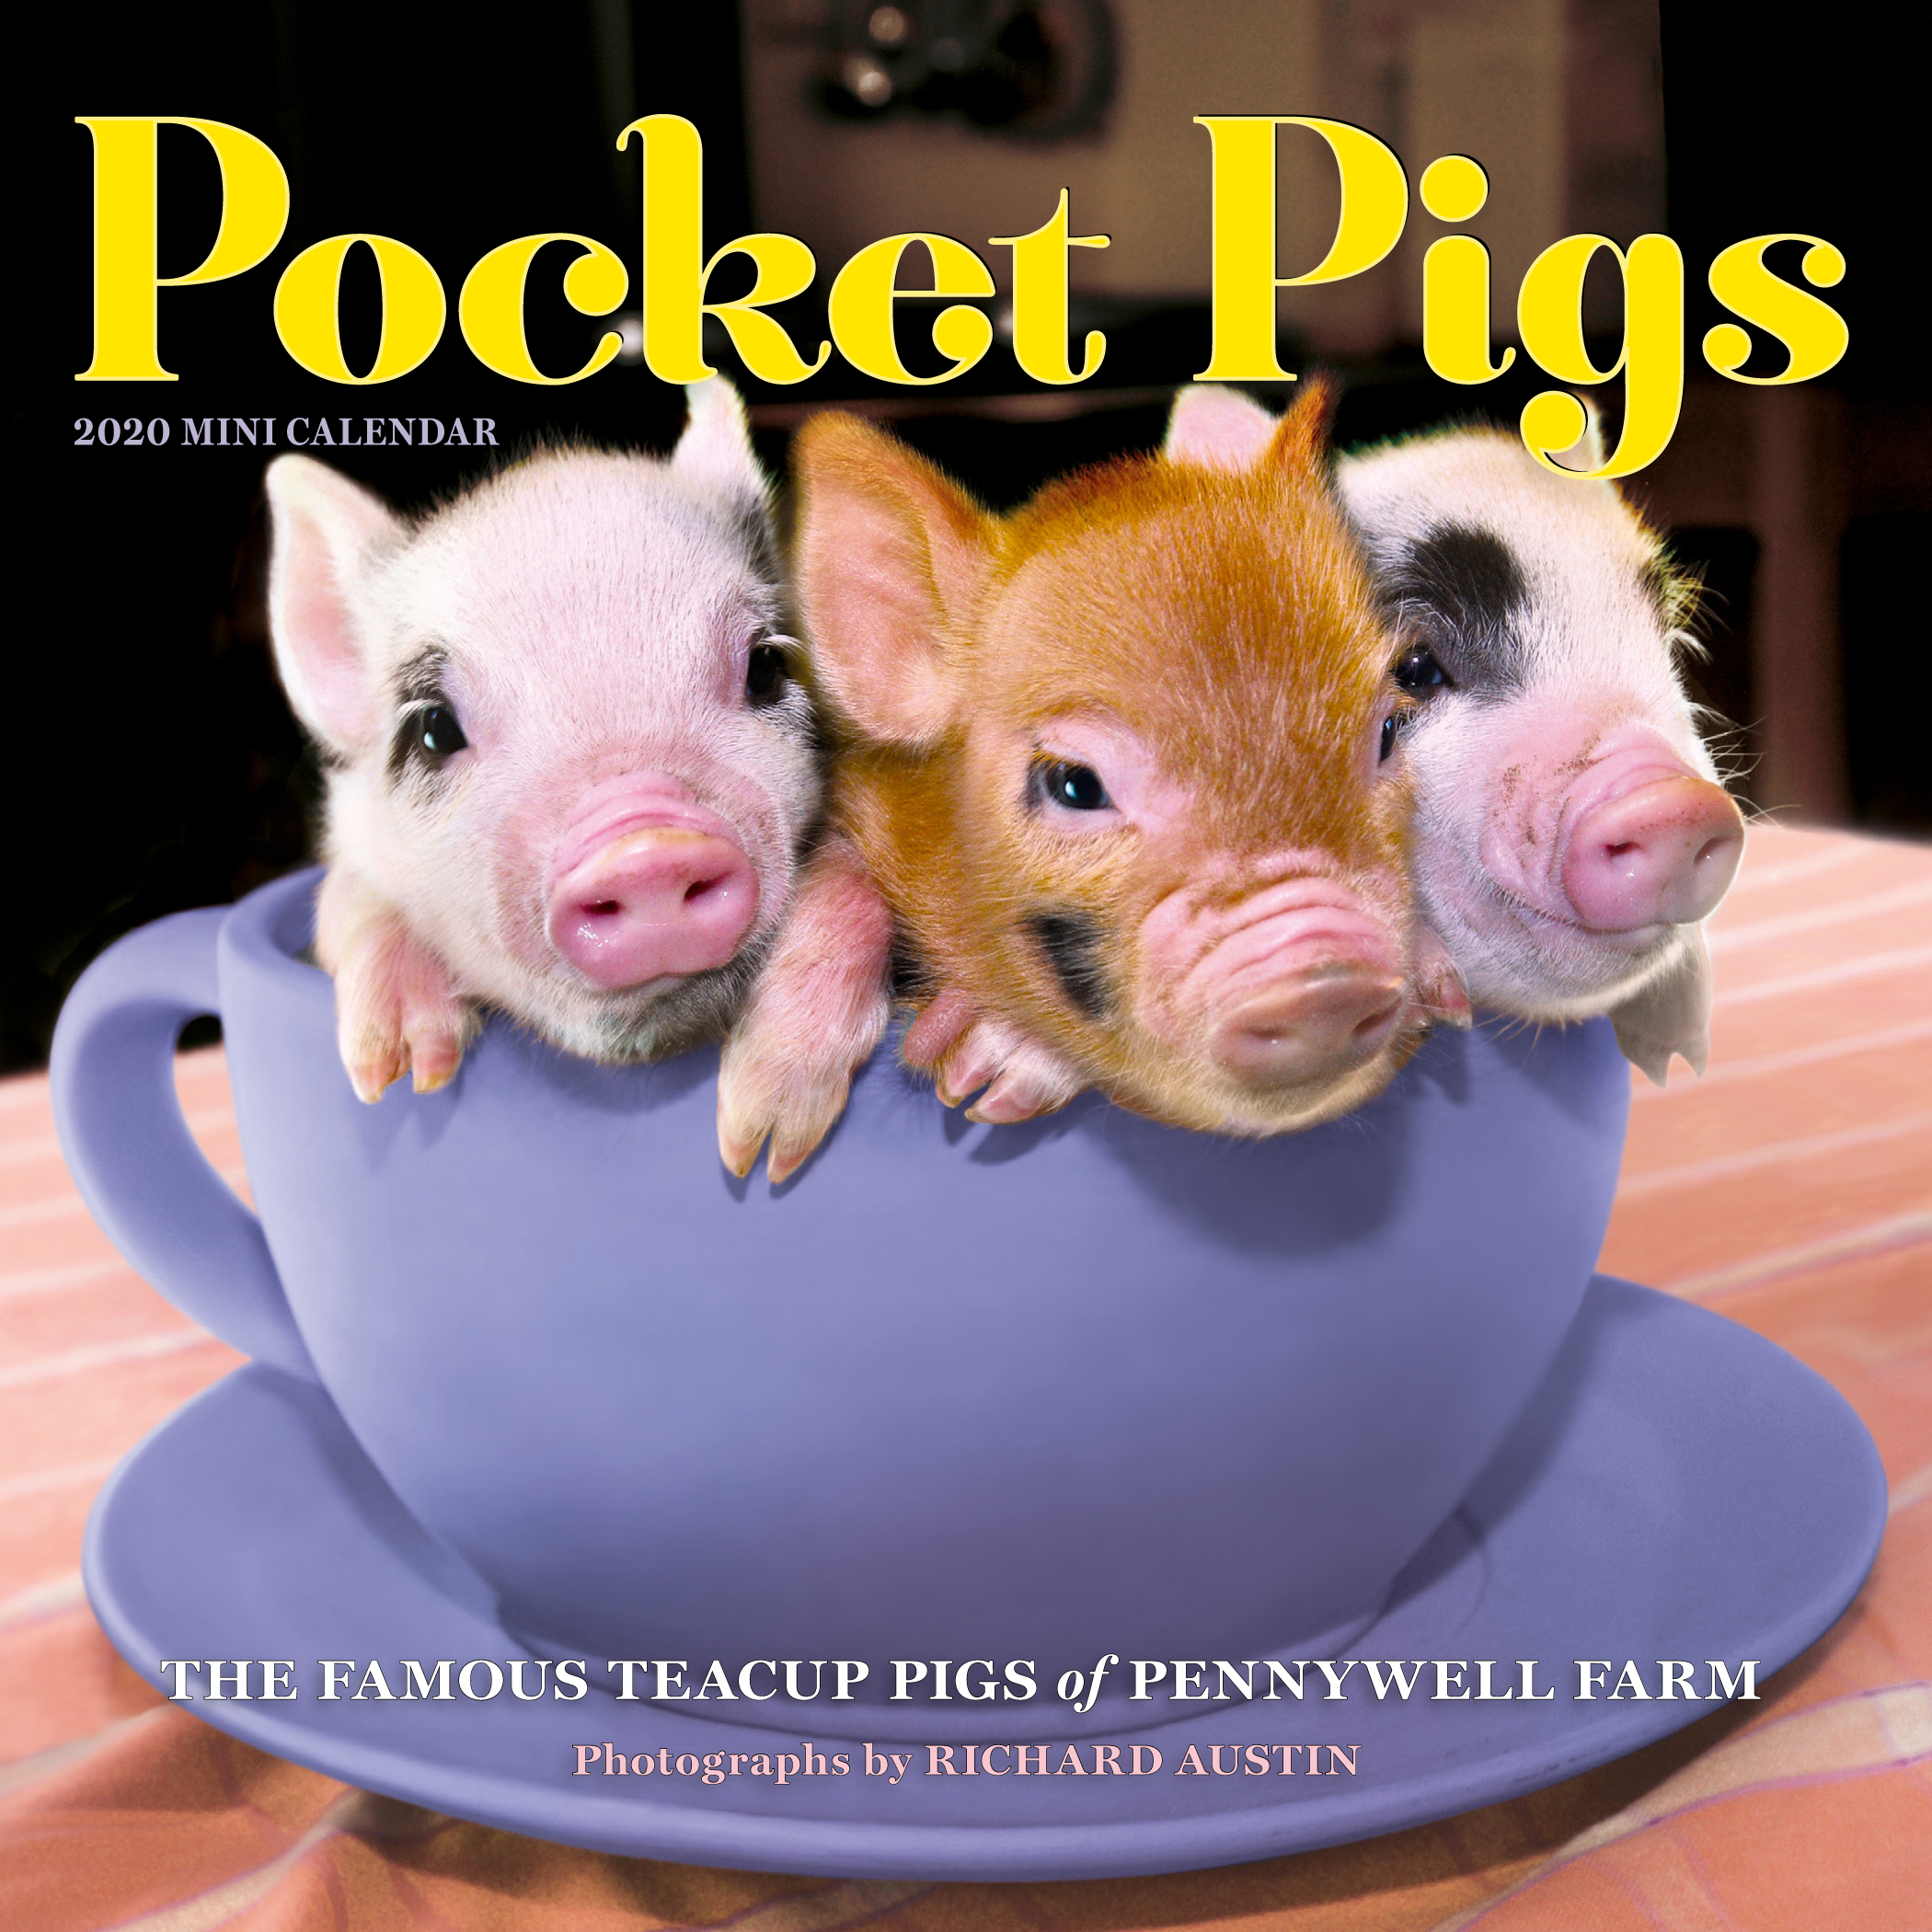 Pig Calendar 2020 Pocket Pigs Mini Wall Calendar 2020   Workman Publishing